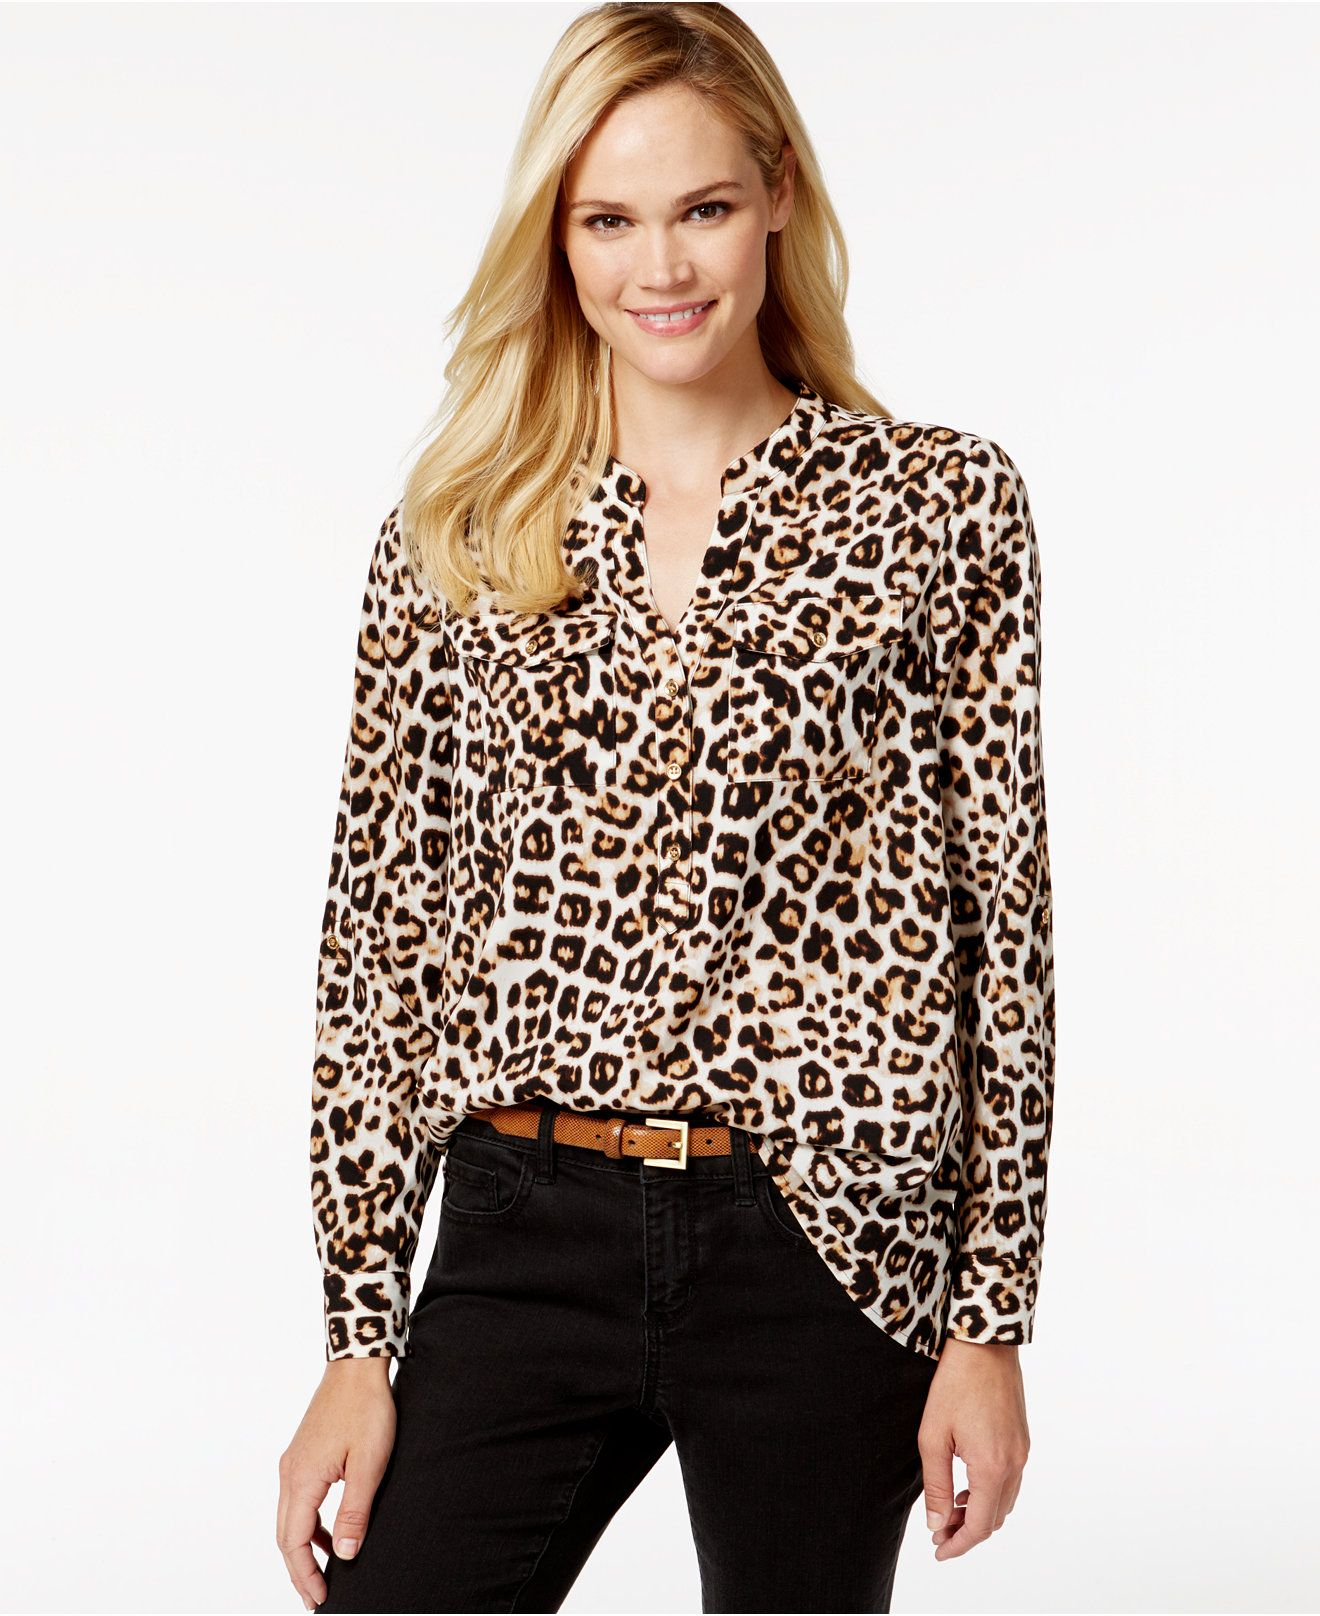 189d6196d2cd8a Charter Club Animal-Print Button-Down Shirt, Only at Macy's - Tops - Women  - Macy's